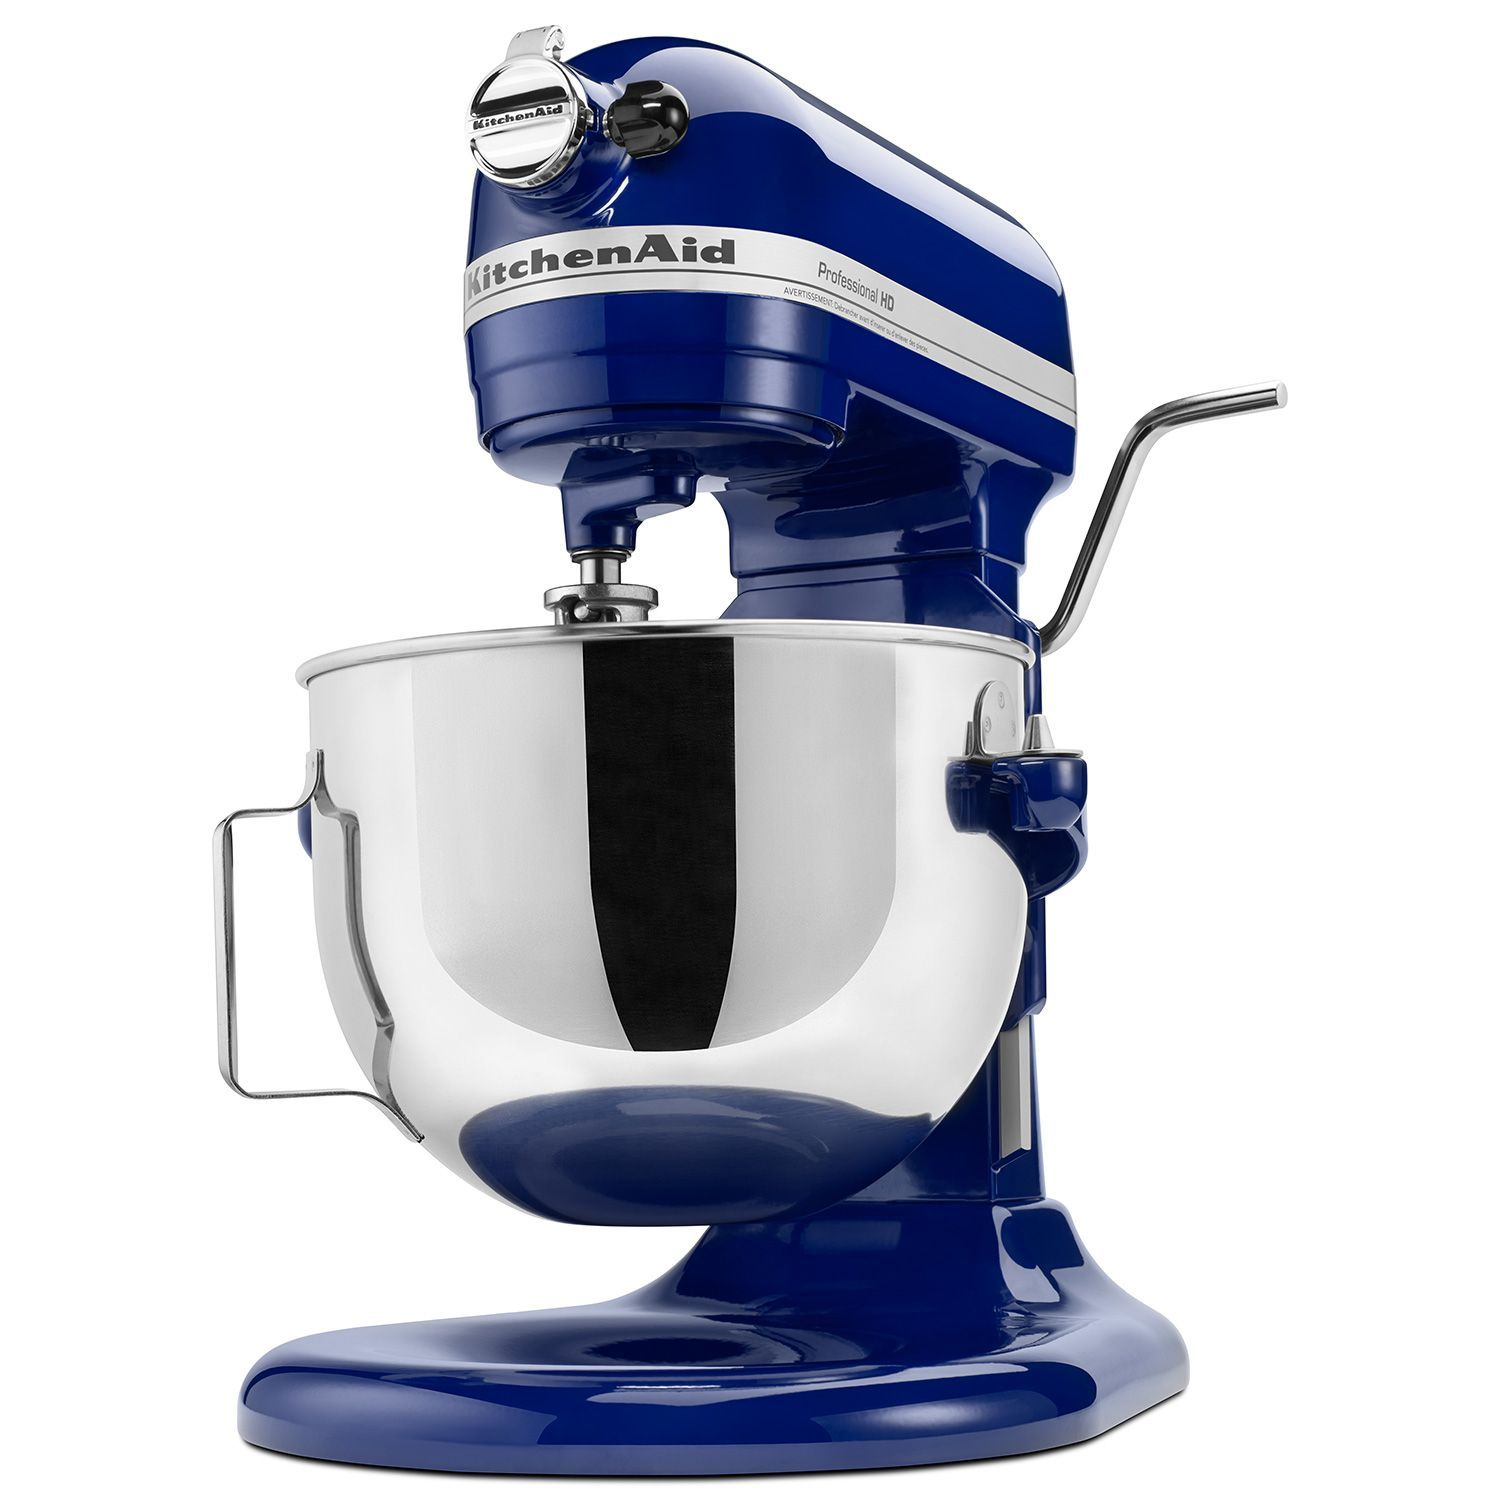 Astounding Kitchenaid Professional 5 Quart Heavy Duty Stand Mixer Home Interior And Landscaping Analalmasignezvosmurscom